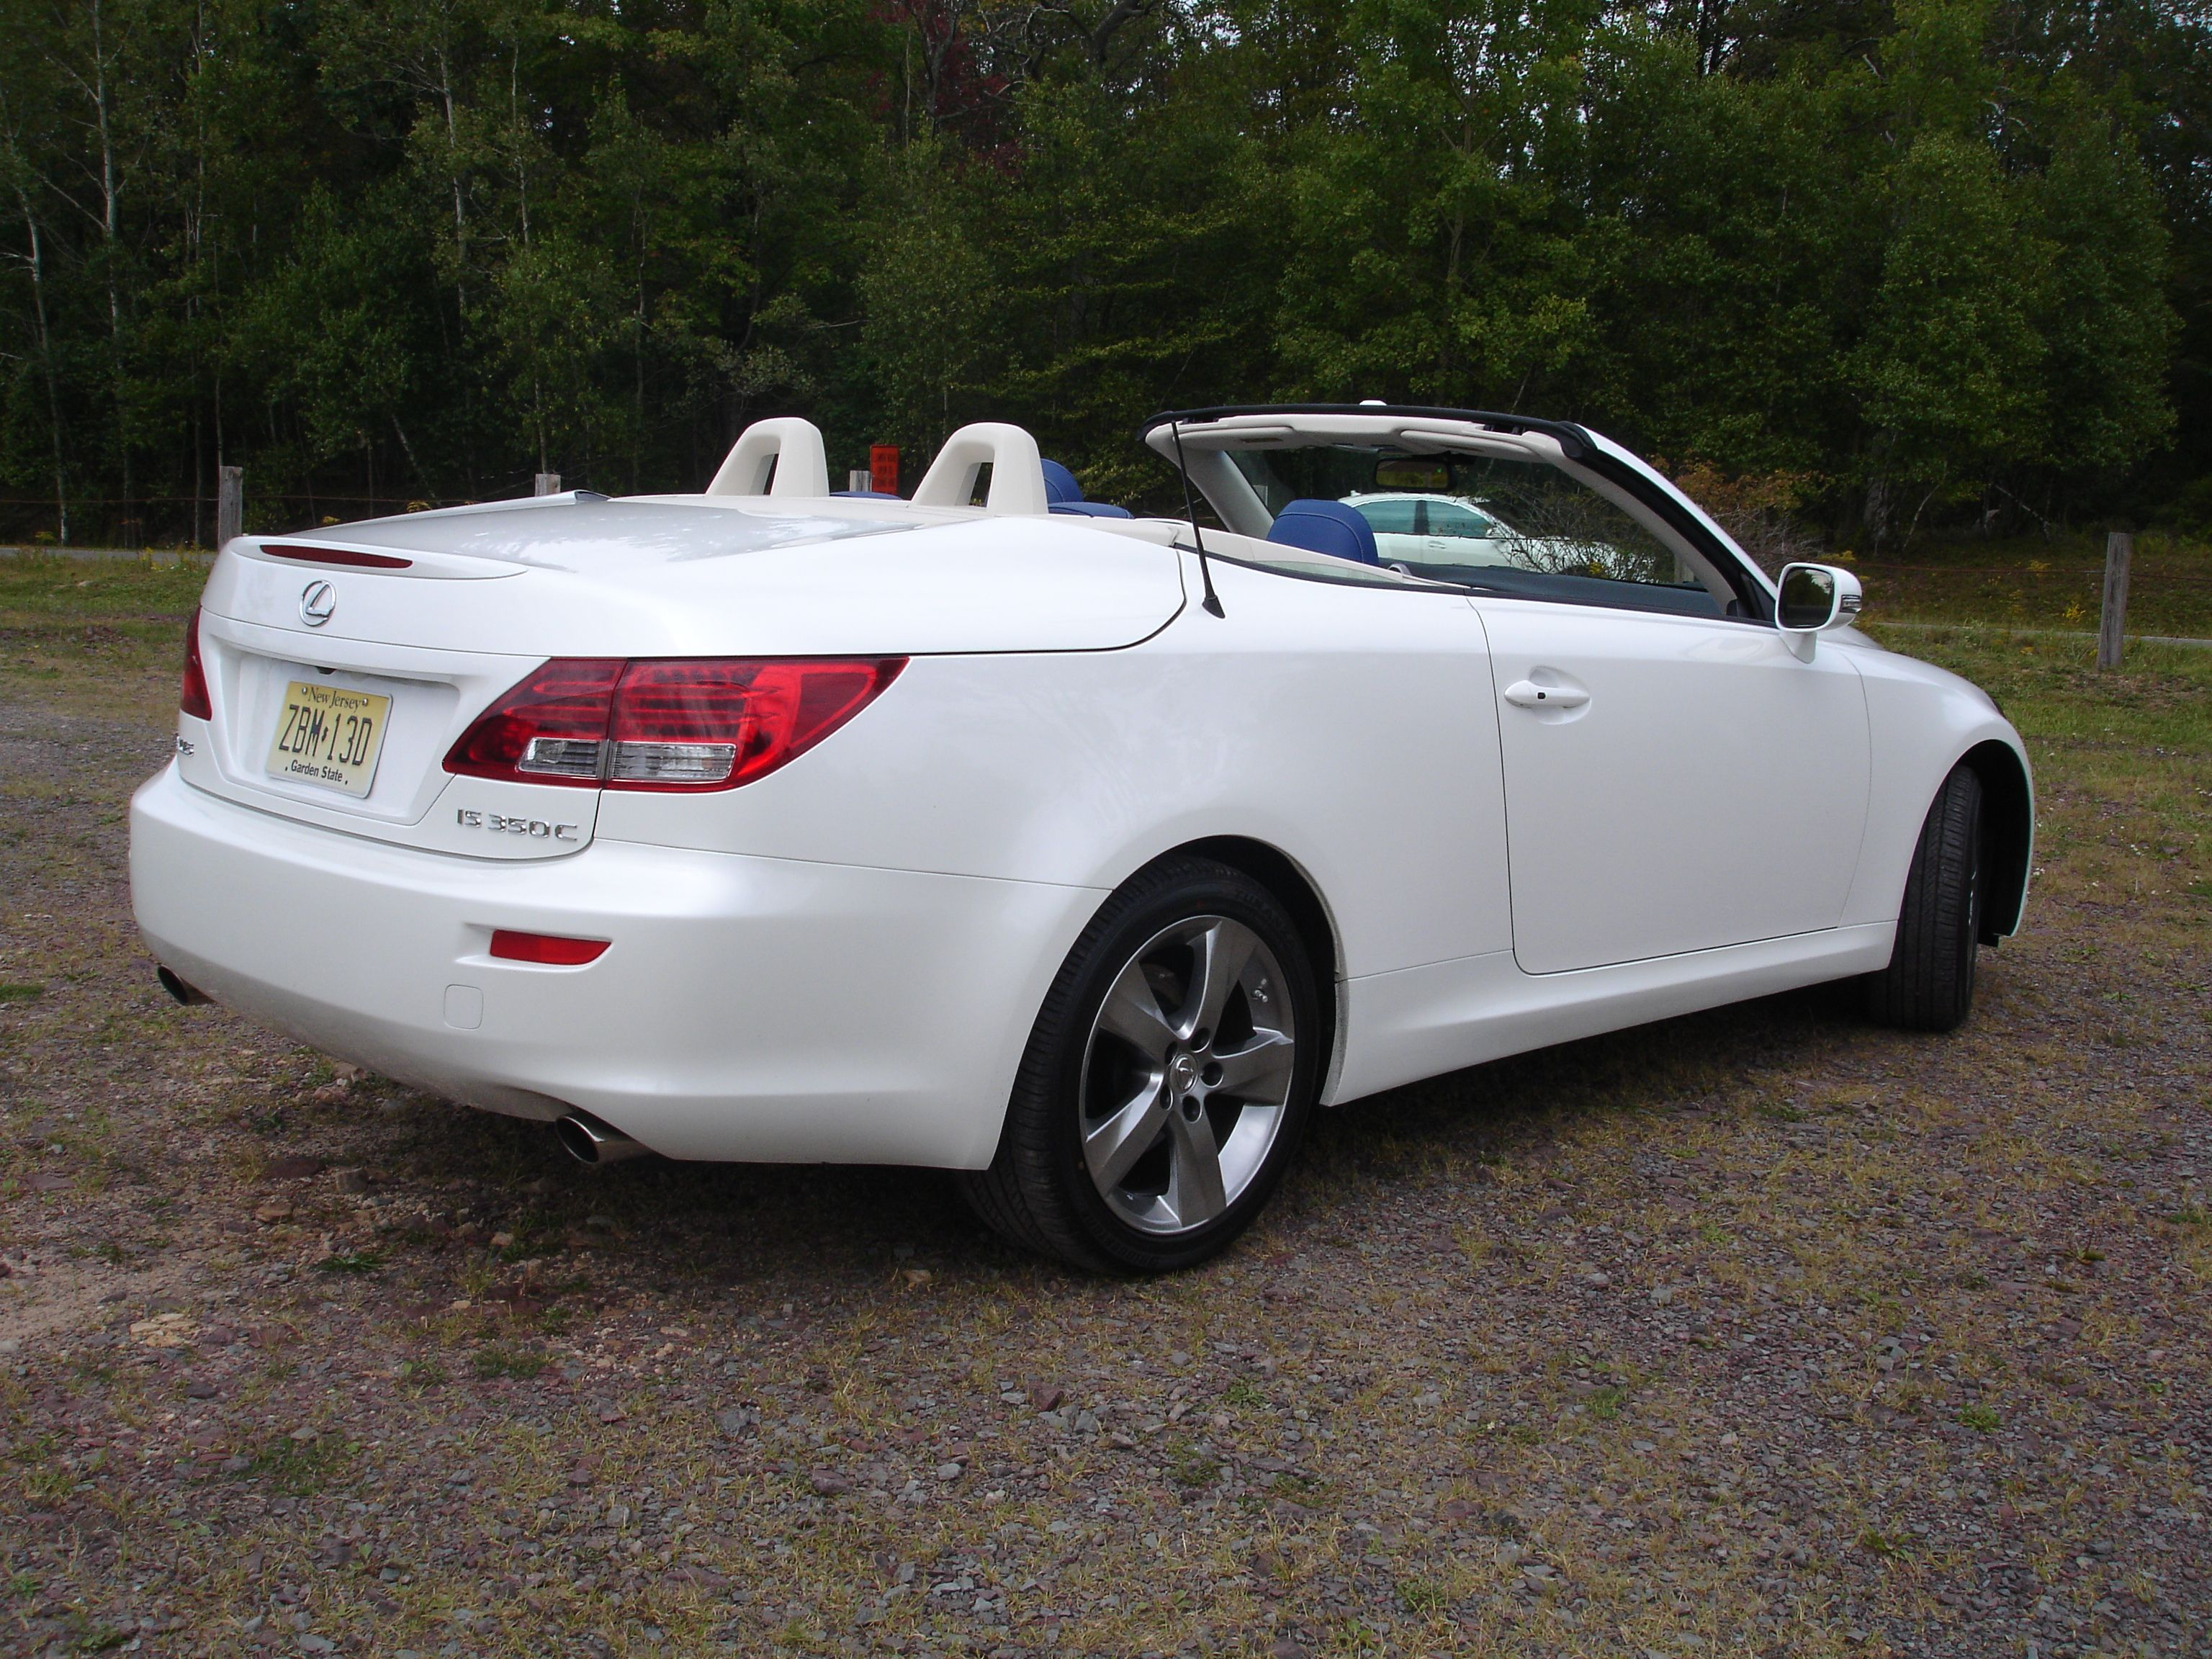 Lexus Is 350 Going To Be Paid For By Nerium Lexus 2010 Lexus Convertible